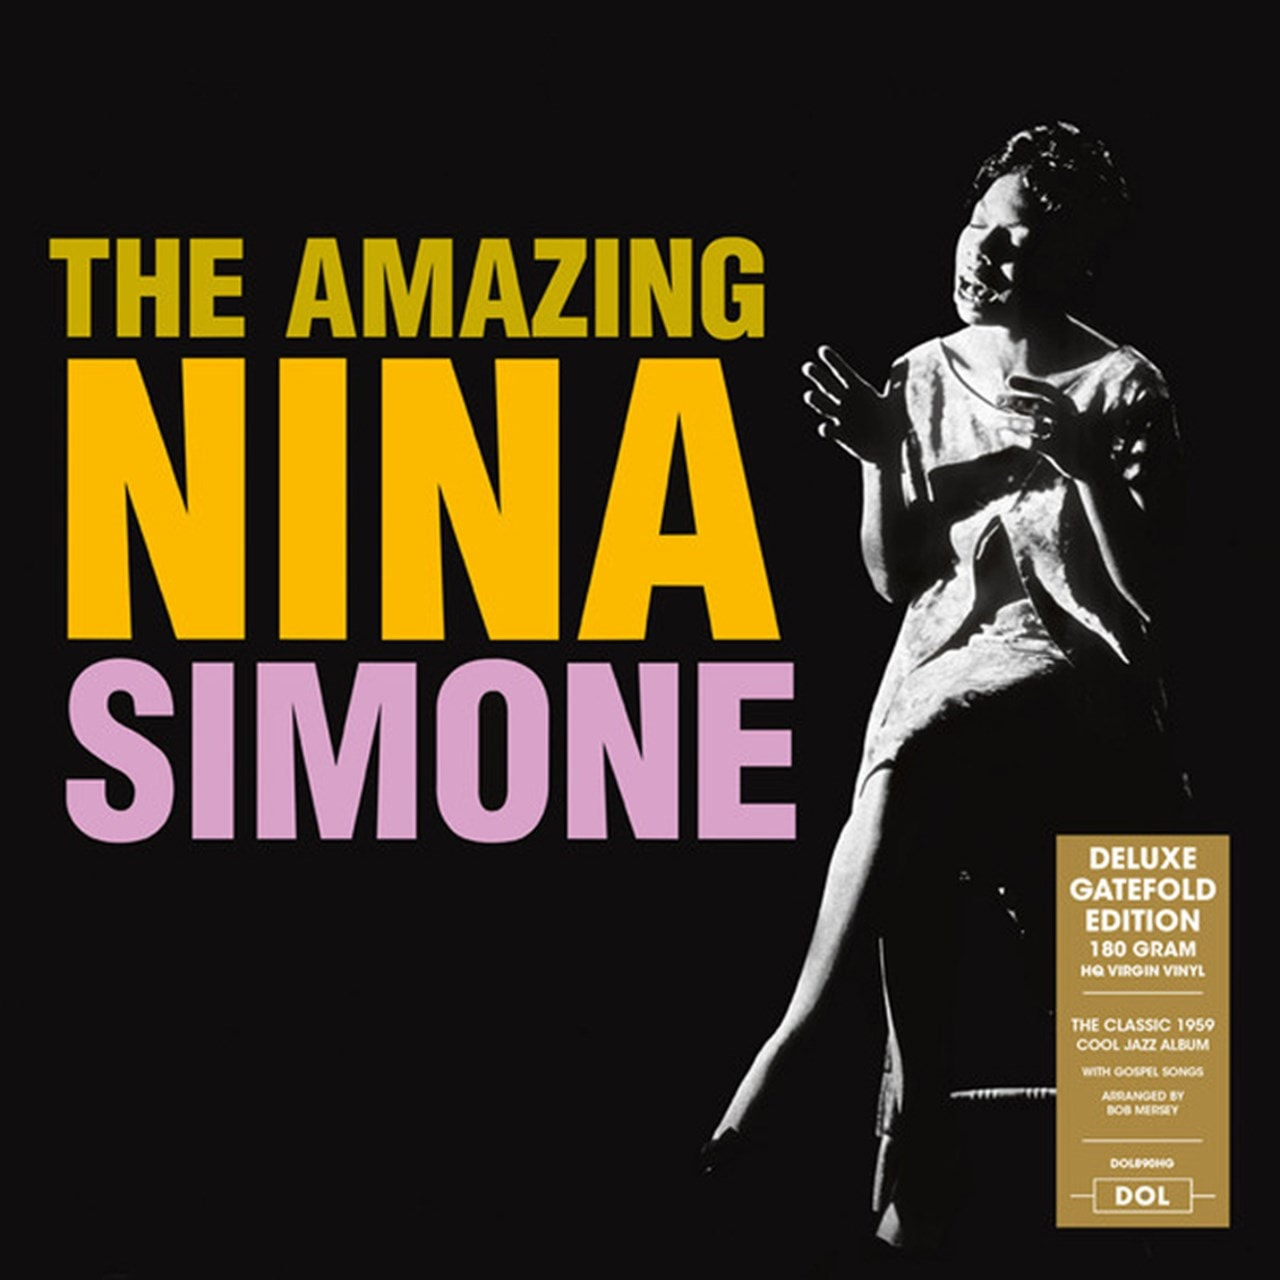 The Amazing Nina Simone - 1